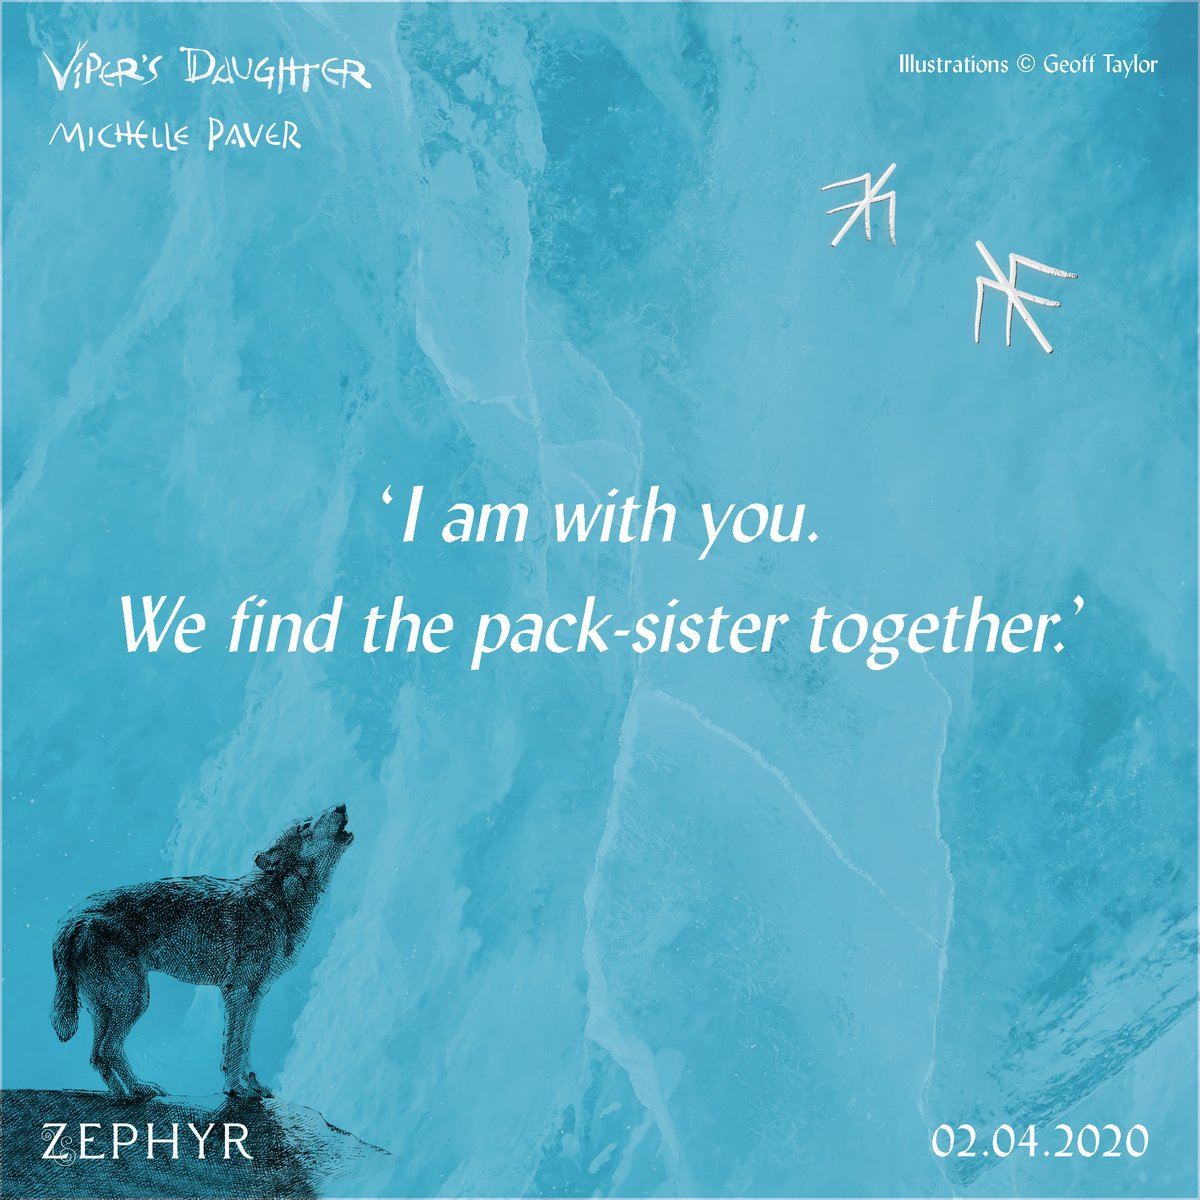 Today is FOUR months until the publication of #VipersDaughter by @MichellePaver so here's a sneak peek! 📅🐺When Renn mysteriously disappears, Torak and Wolf brave the Far North to find her...Find out more about the exciting return of #WolfBrother: http://bit.ly/VipersDaughter